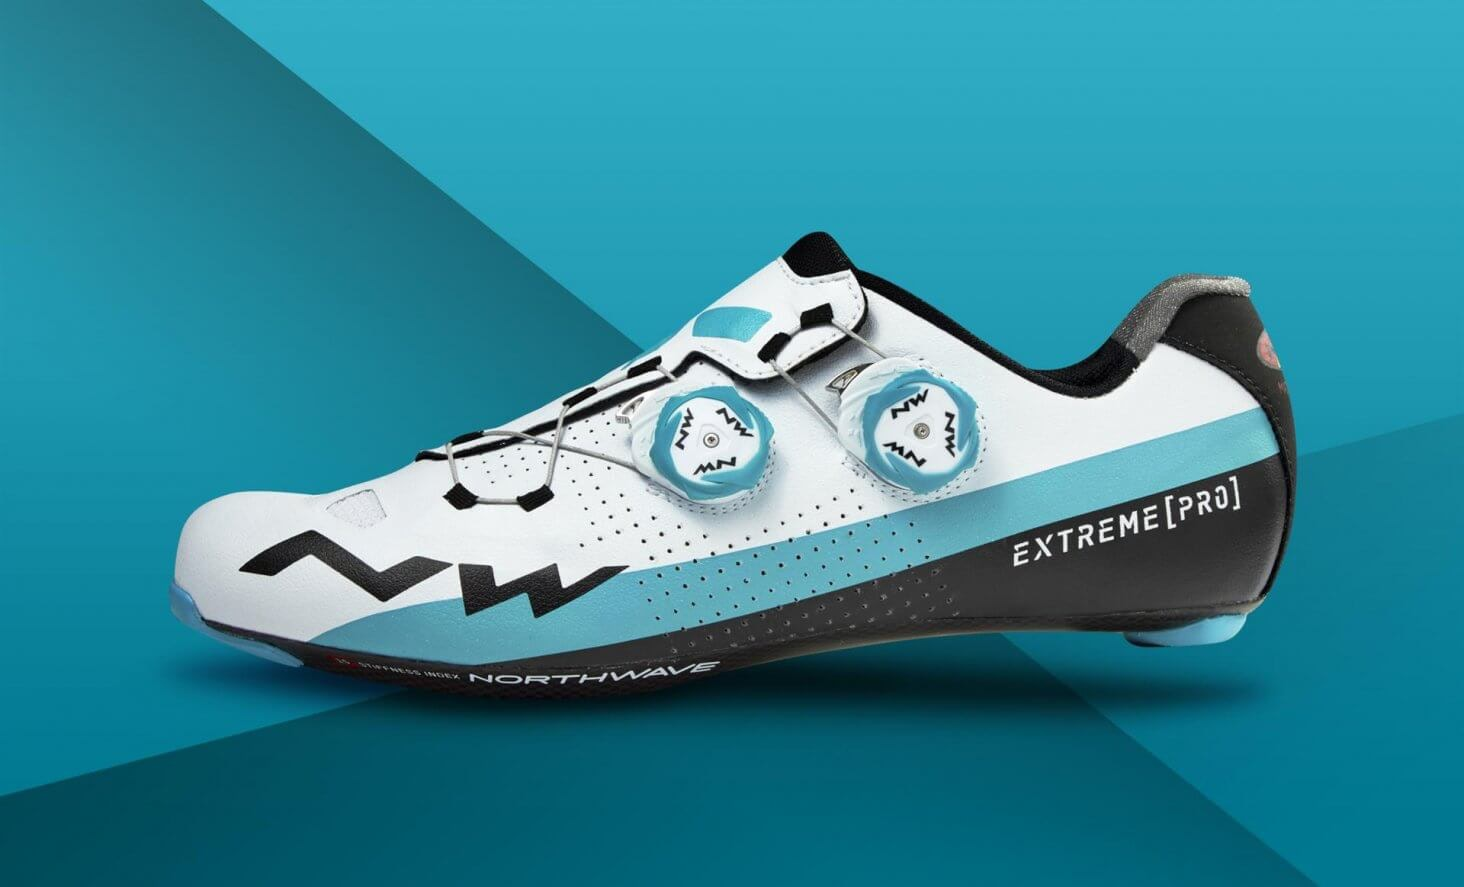 A SPECIAL-EDITION EXTREME PRO DEDICATED TO TEAM ASTANA PREMIERES AT TAIPEI CYCLE